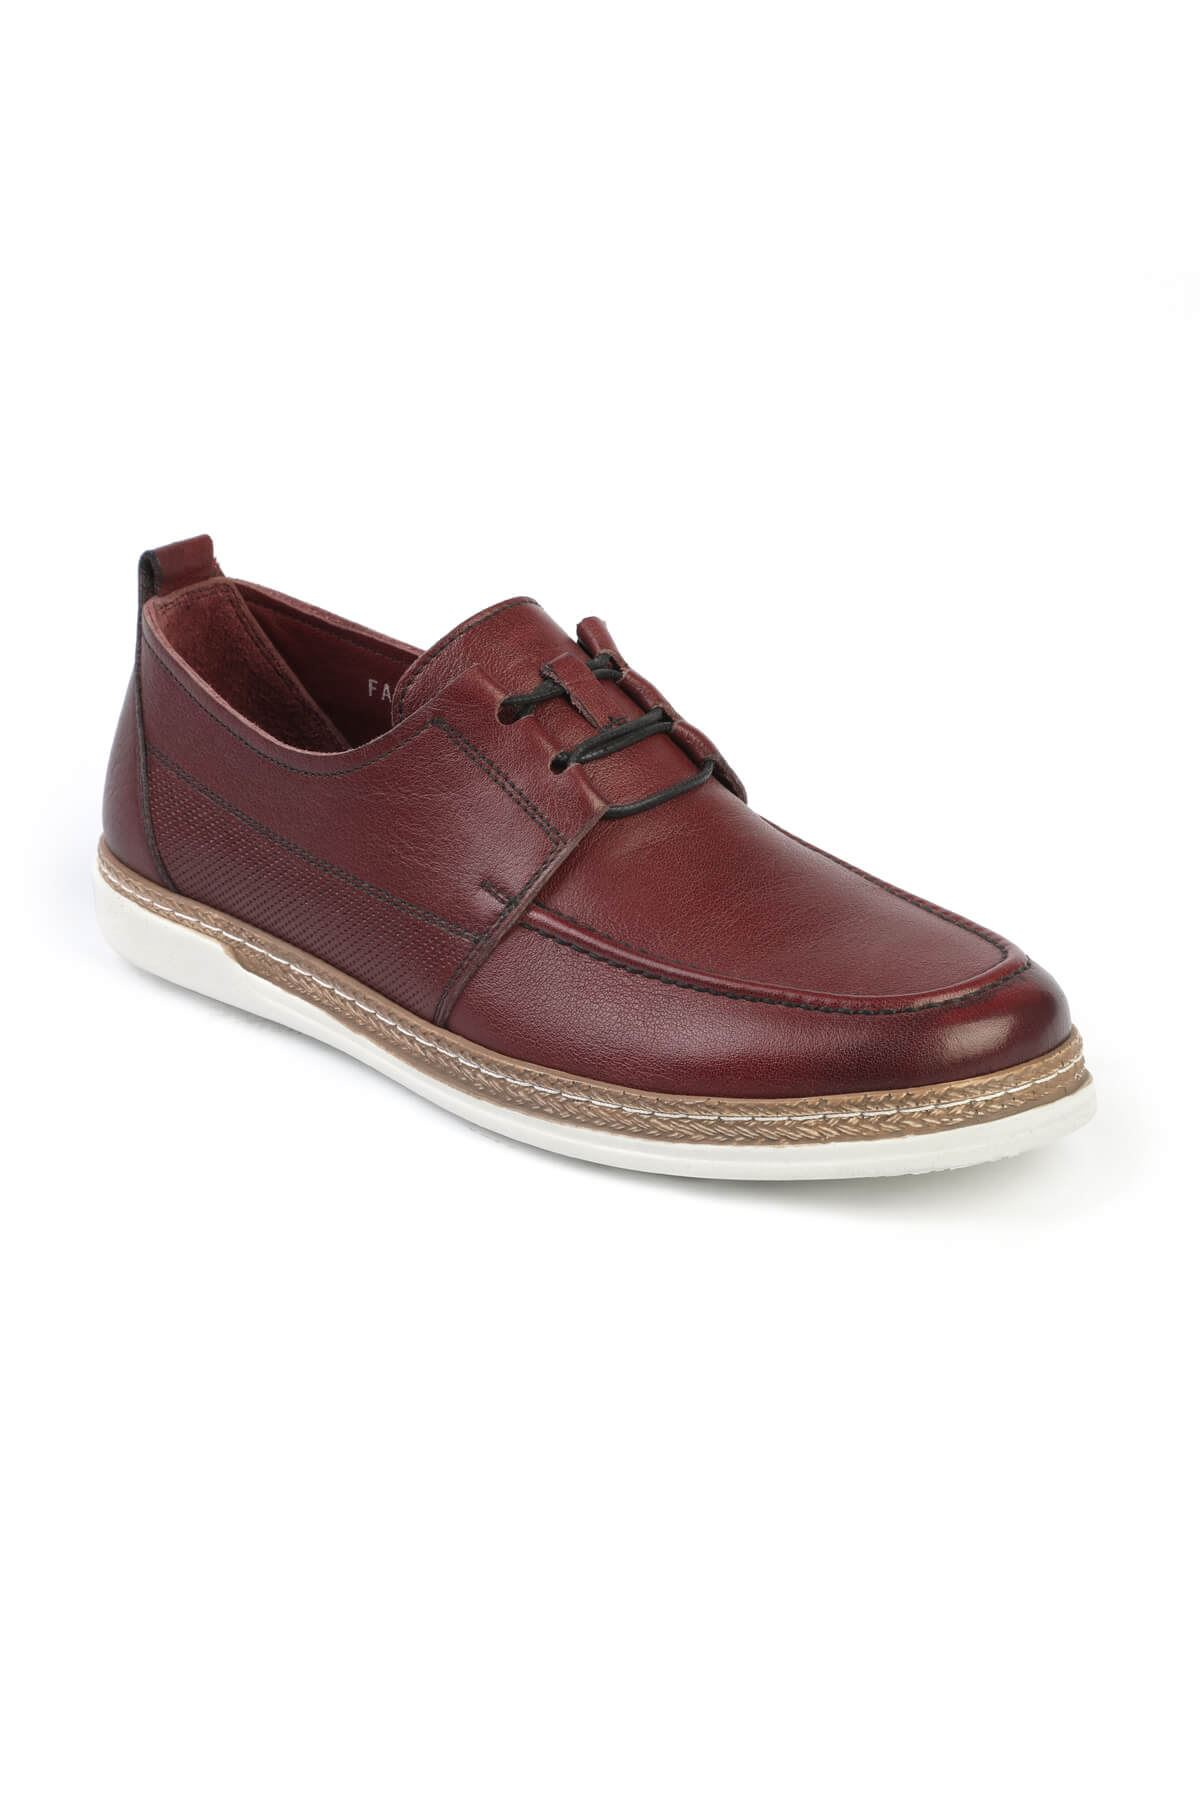 Libero C626 Claret Red Casual Shoes